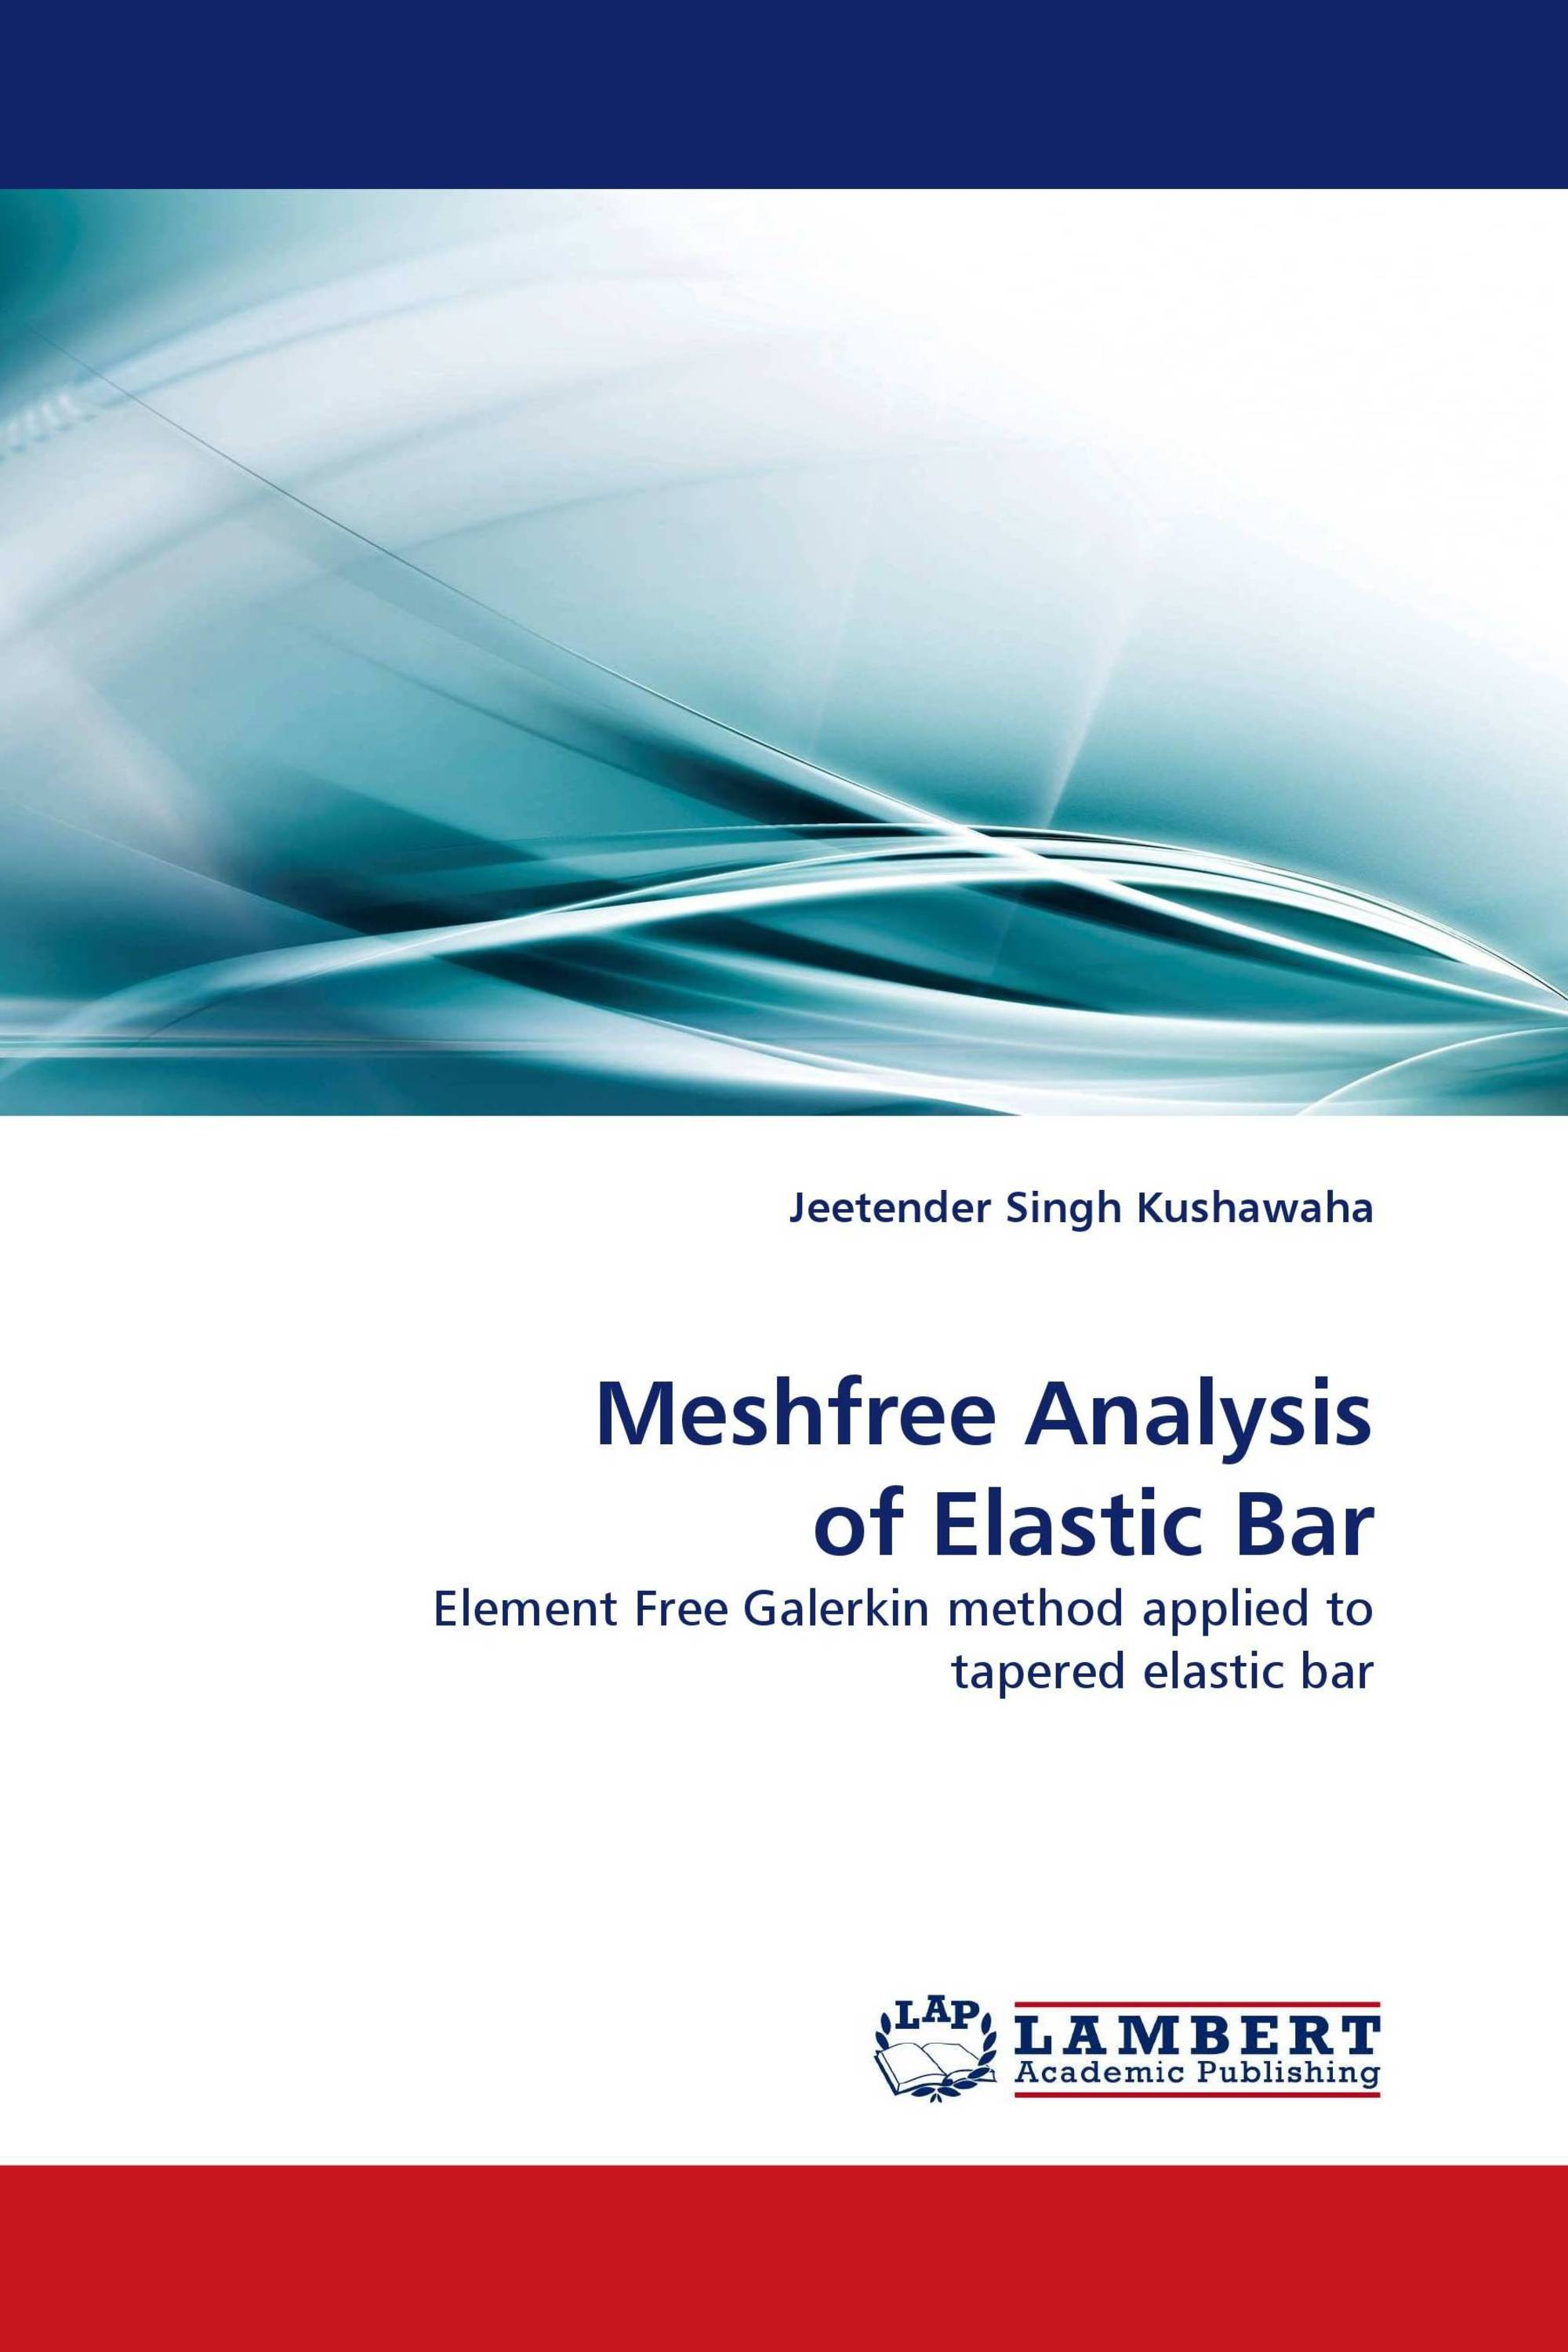 Meshfree Analysis of Elastic Bar